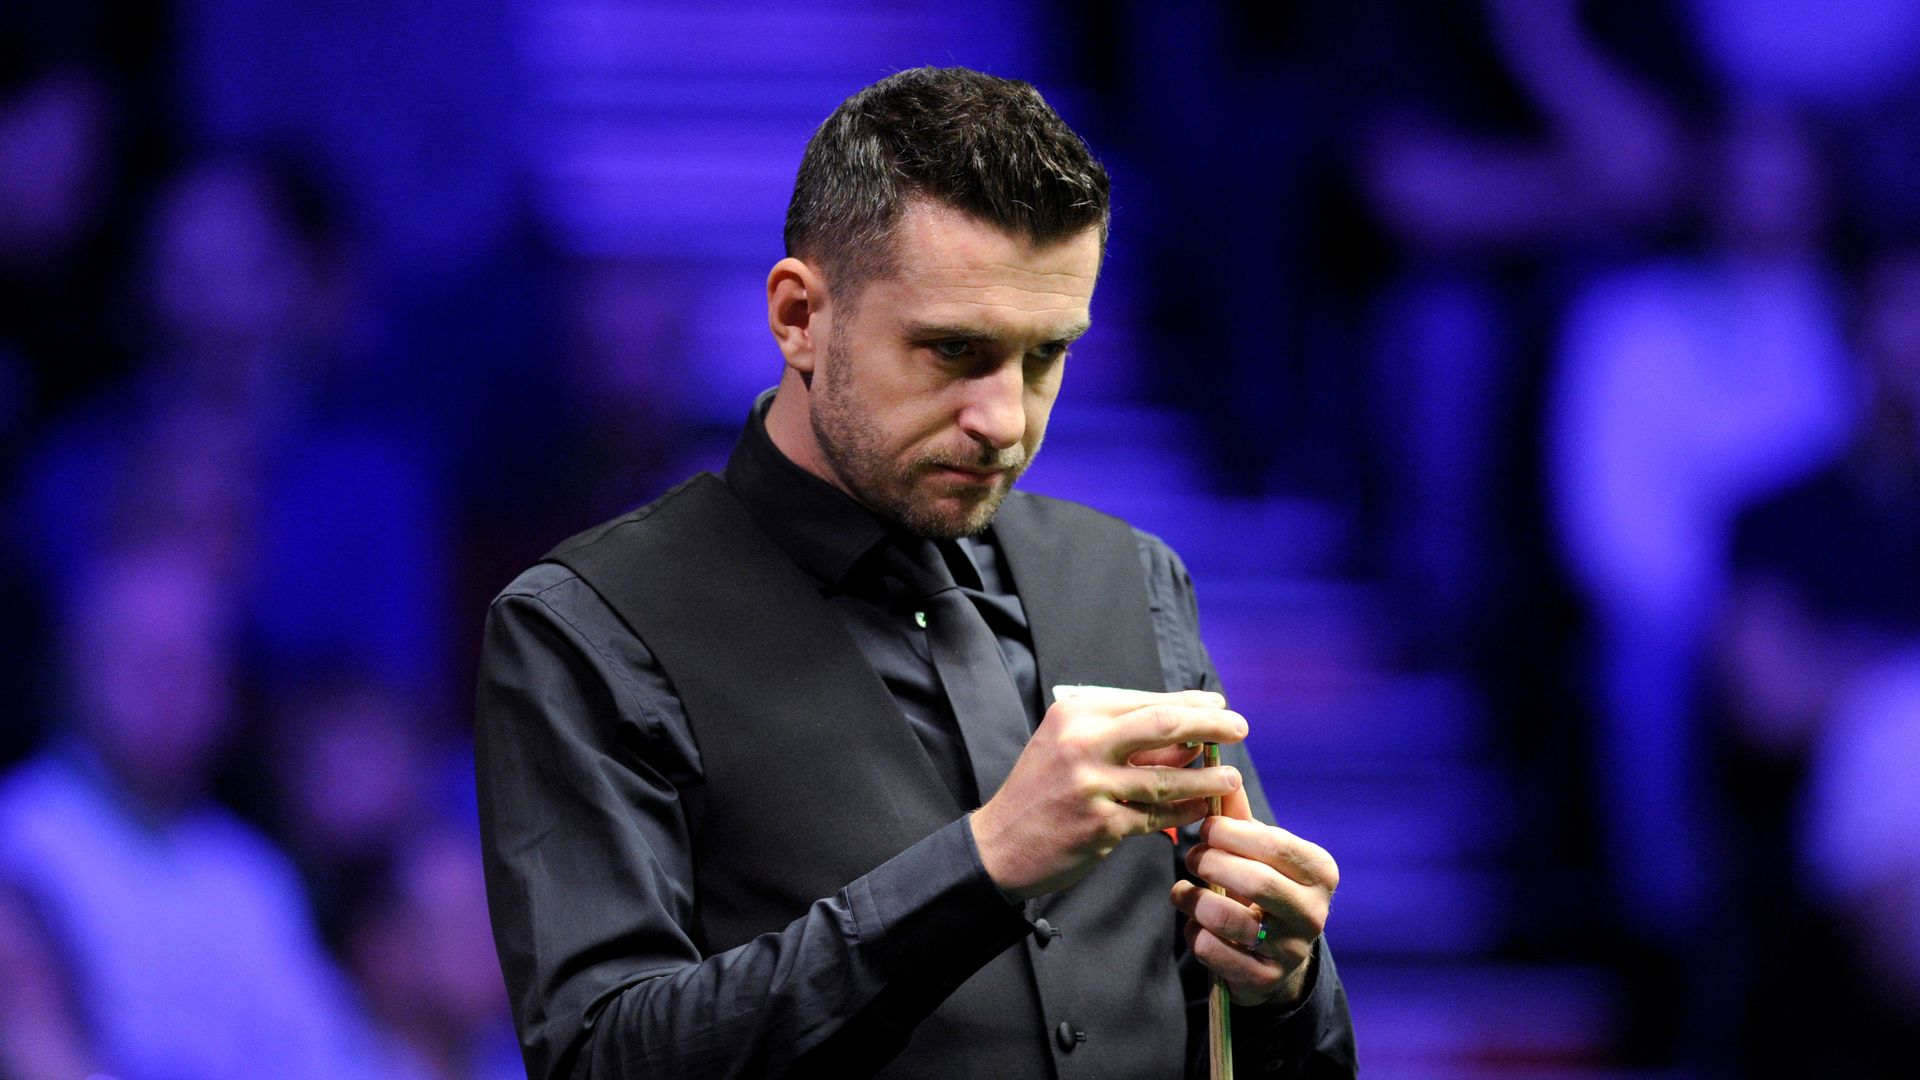 Selby hopes to play for another 10 years